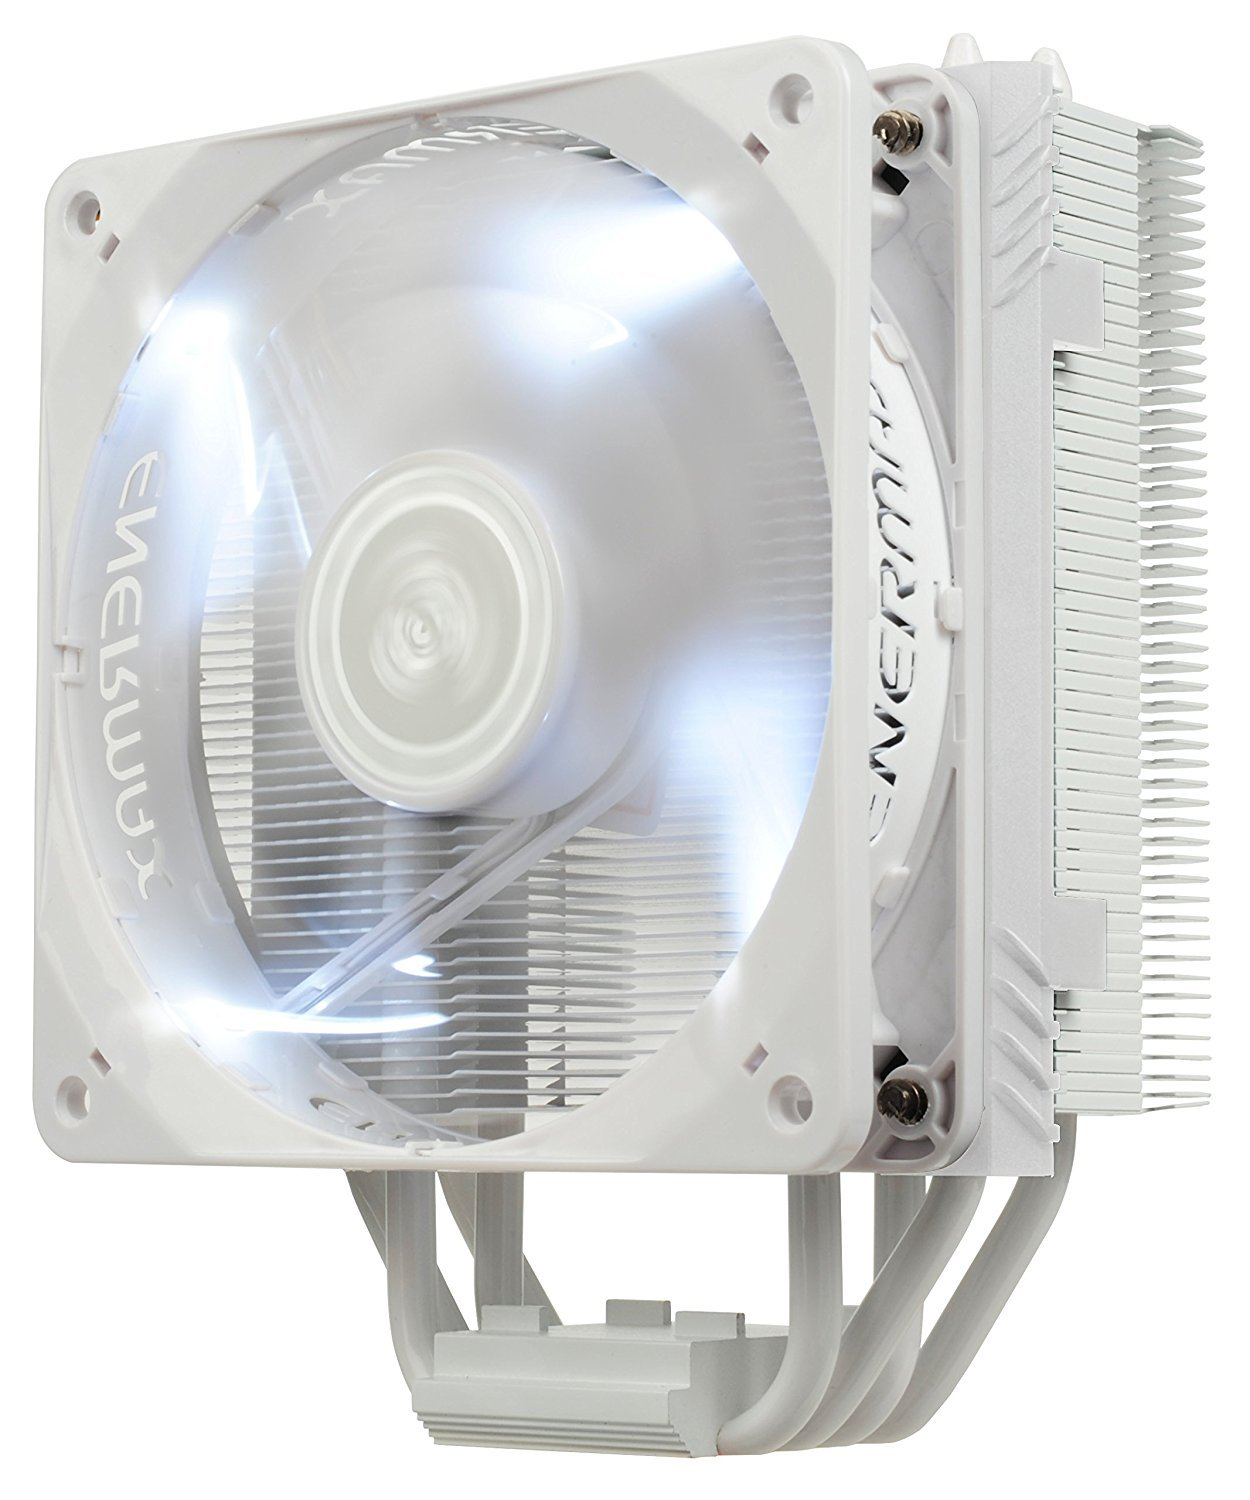 Enermax ETS-T40 Fit Outstanding Cooling Performance CPU Cooler 200W Intel/AMD 120mm Dual Cluster Fans Included, LED Fan - White, ETS-T40F-W